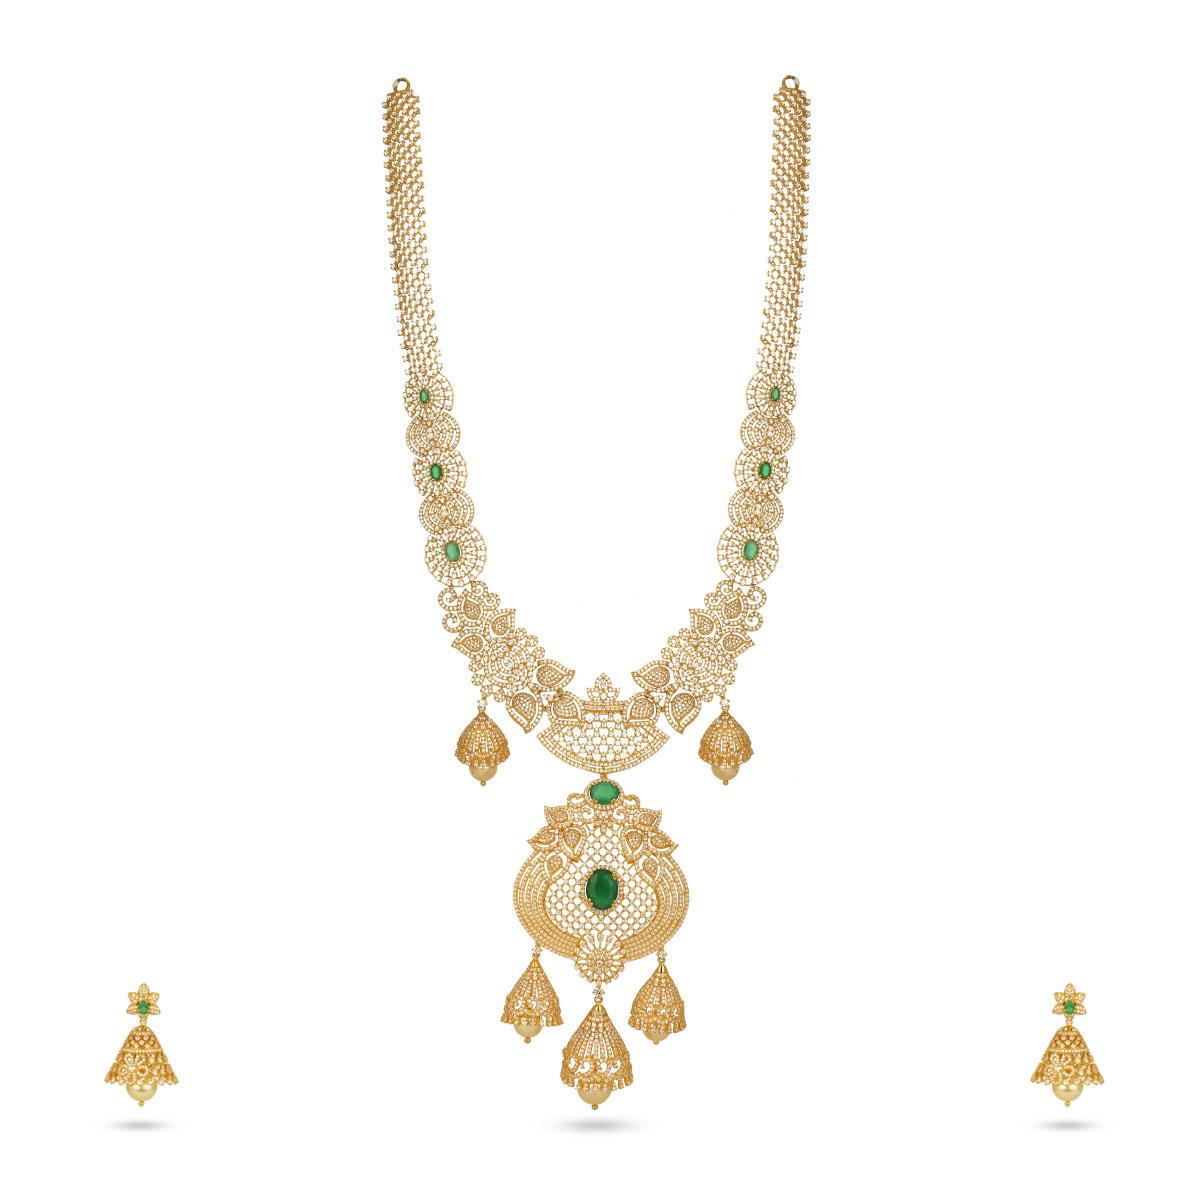 Beguiling Necklace with Earrings